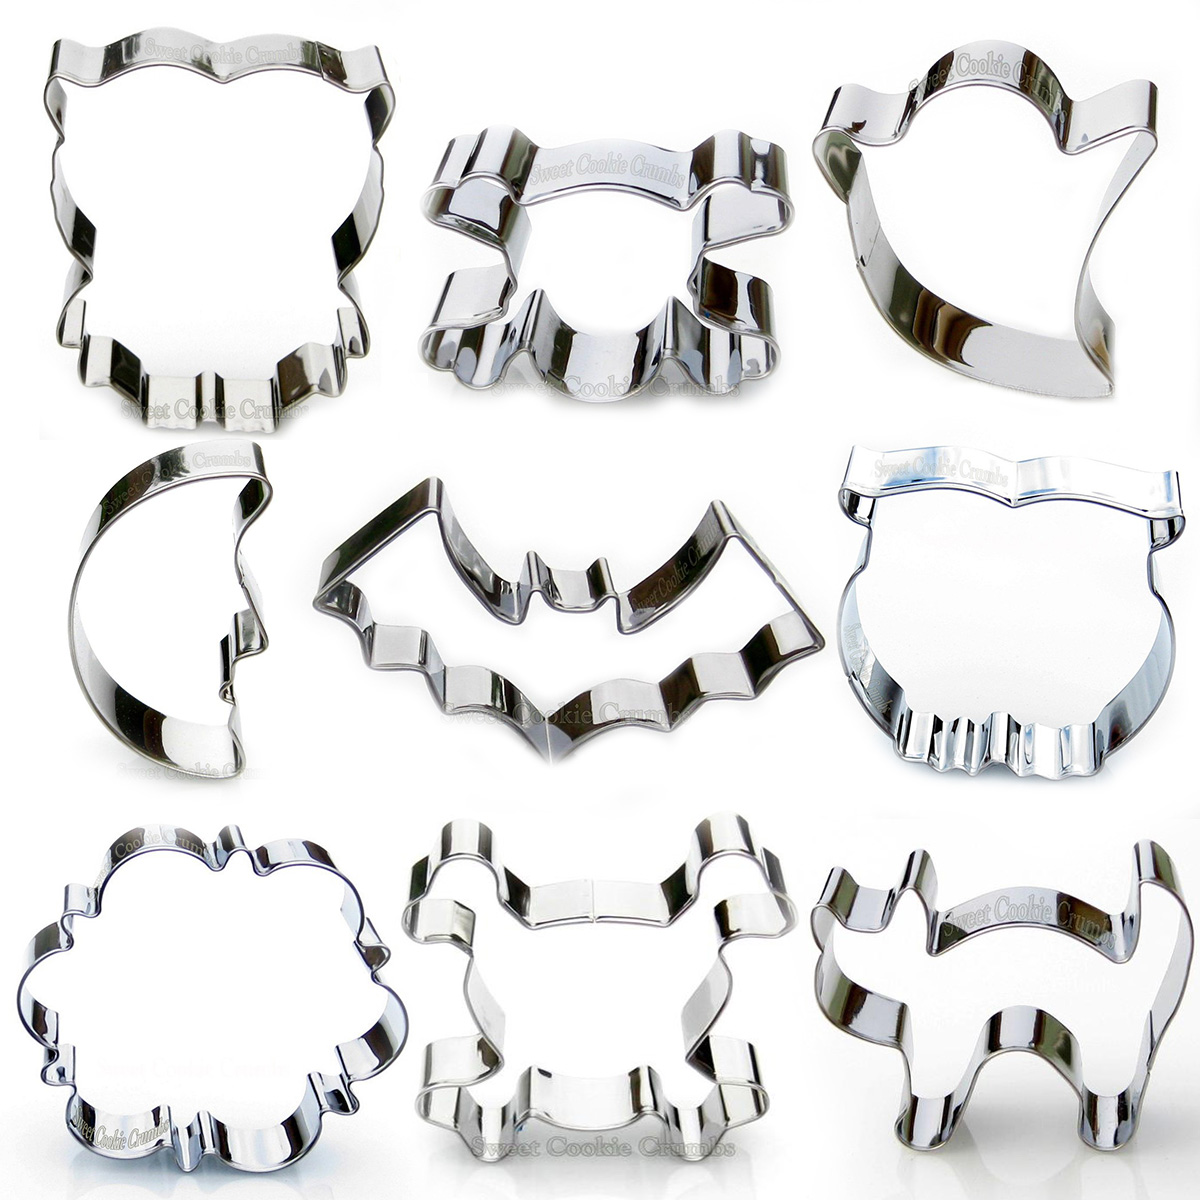 Halloween Cookie Cutter Set - 9 Piece Stainless Steel